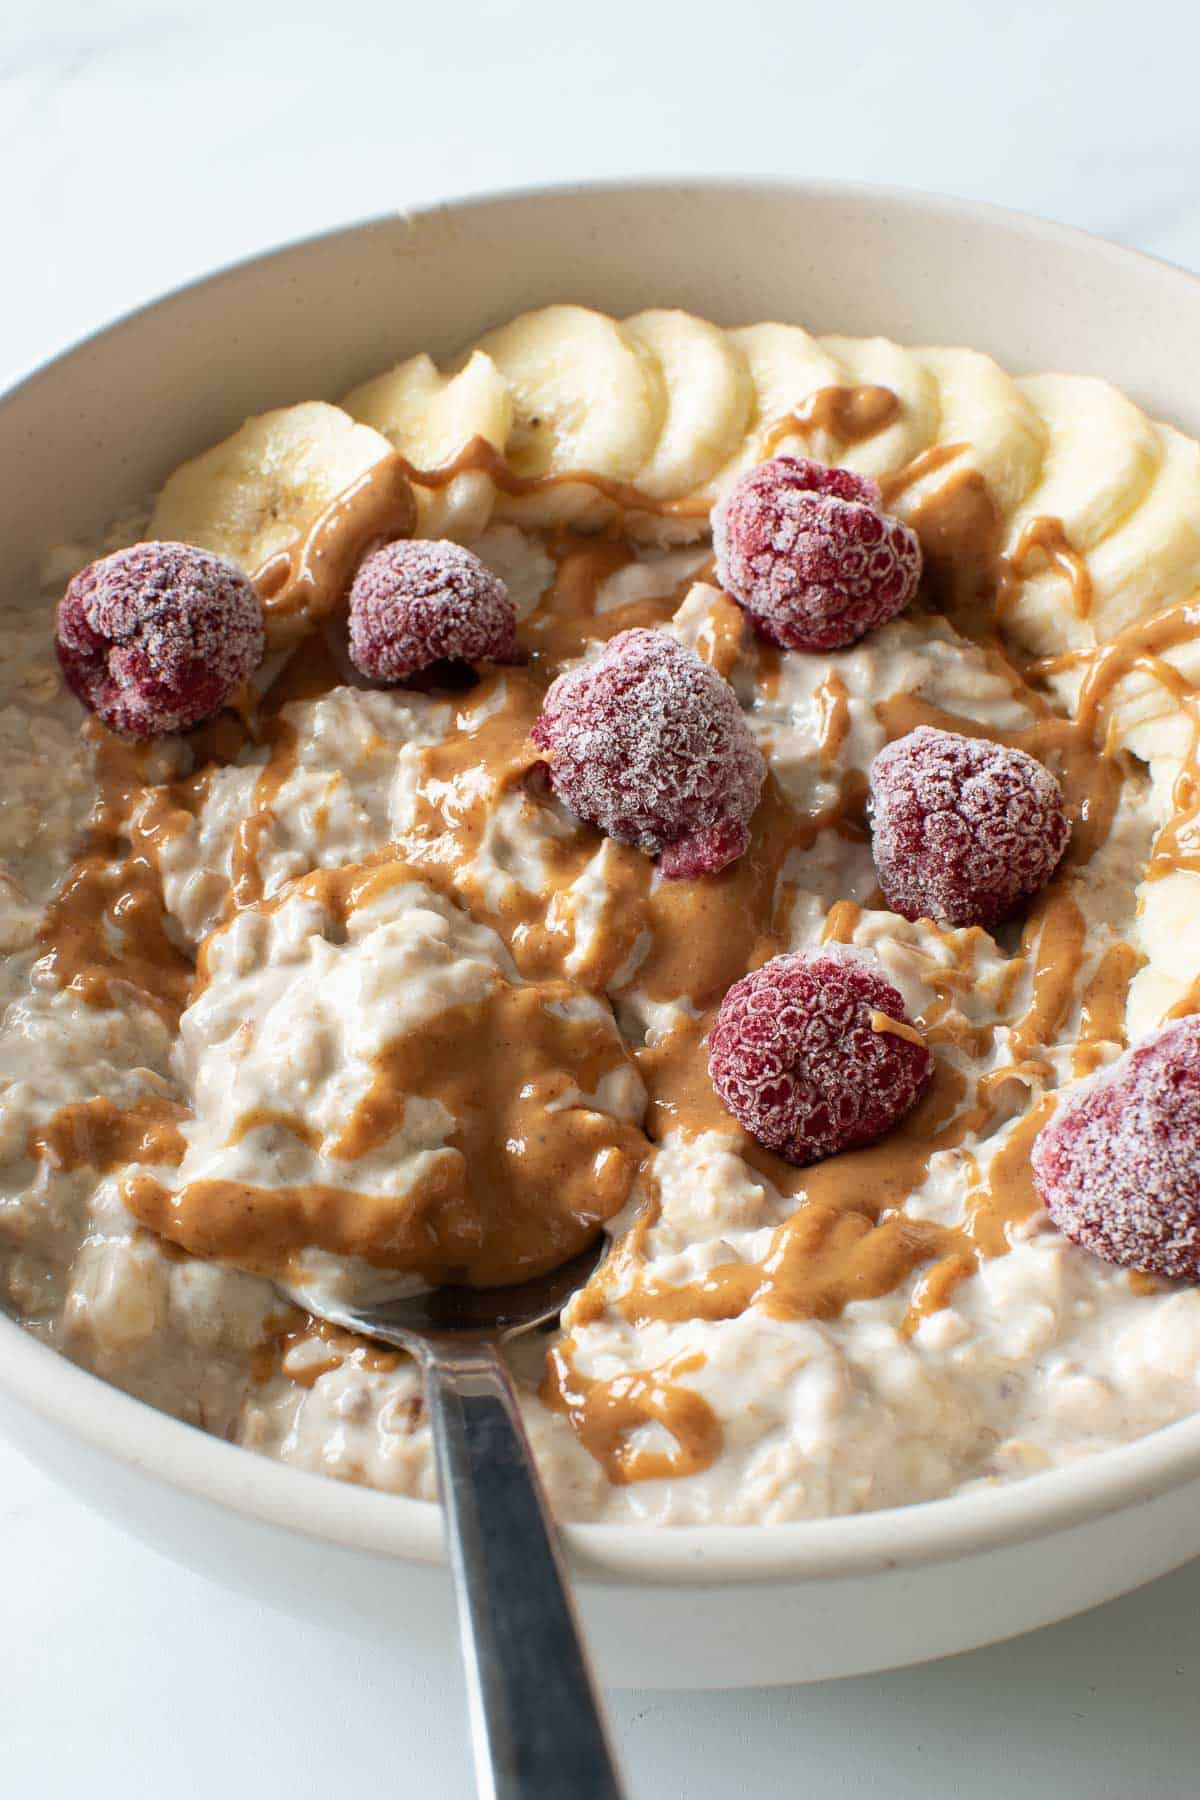 Refrigerator oatmeal with bananas. A spoon lifting out a portion.